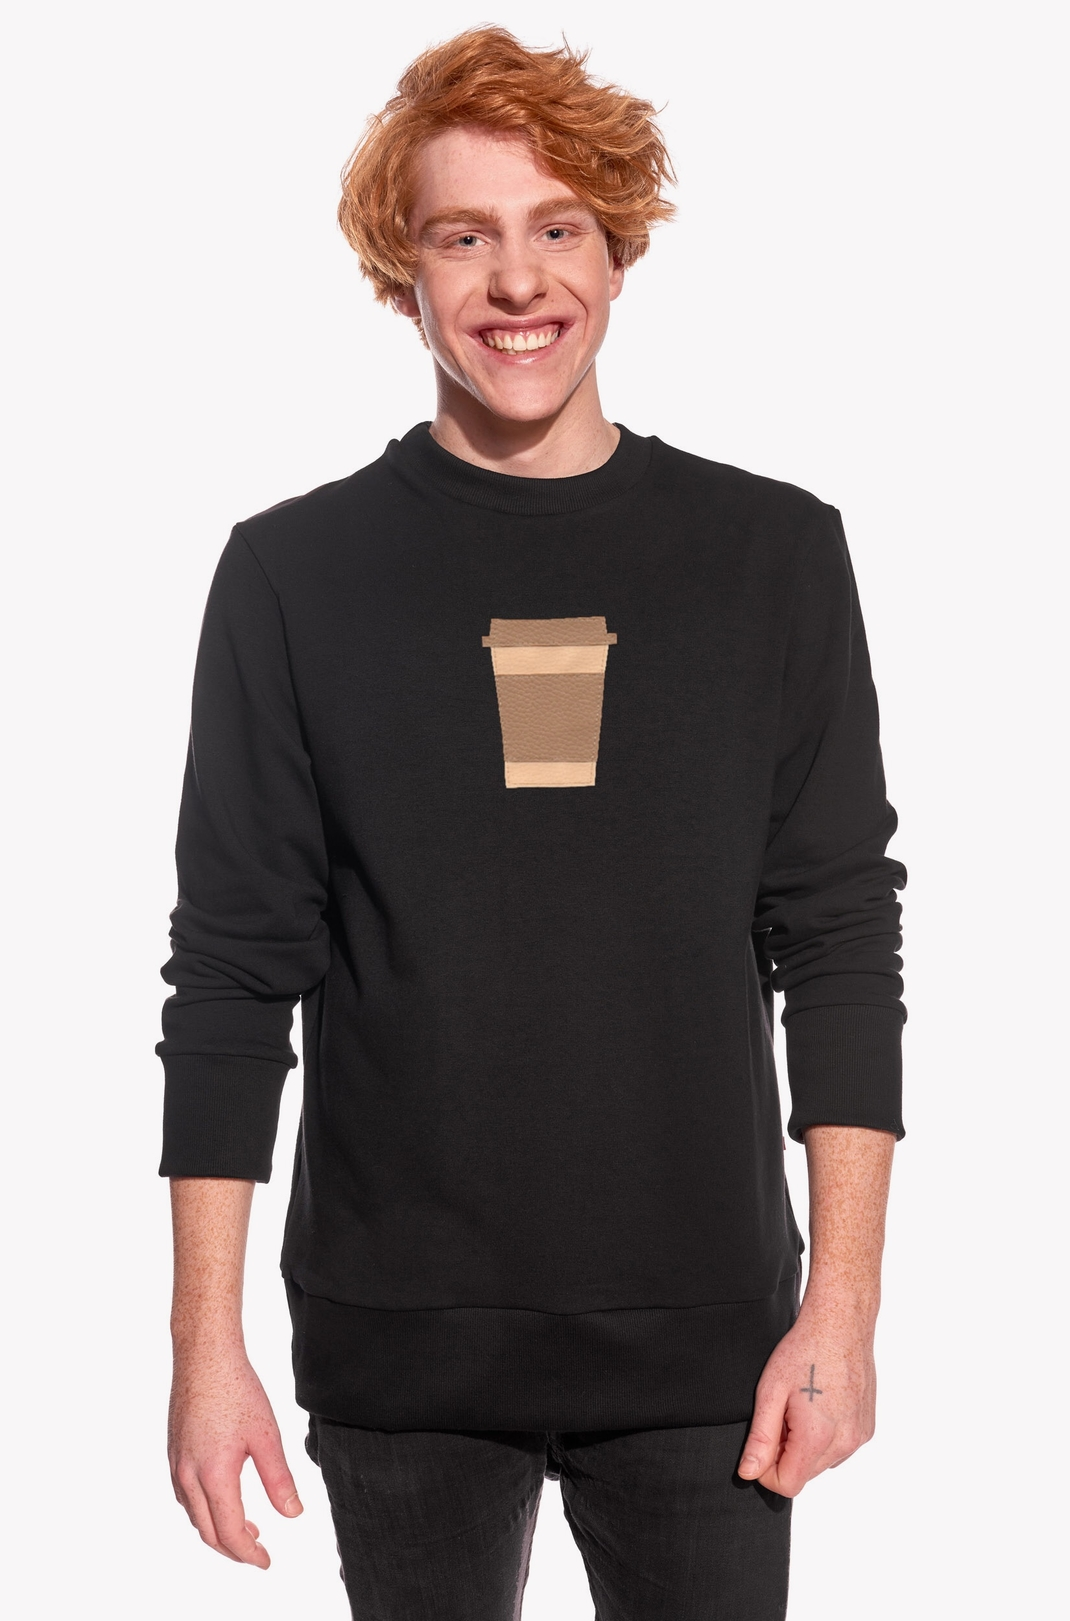 Hoodie with coffee